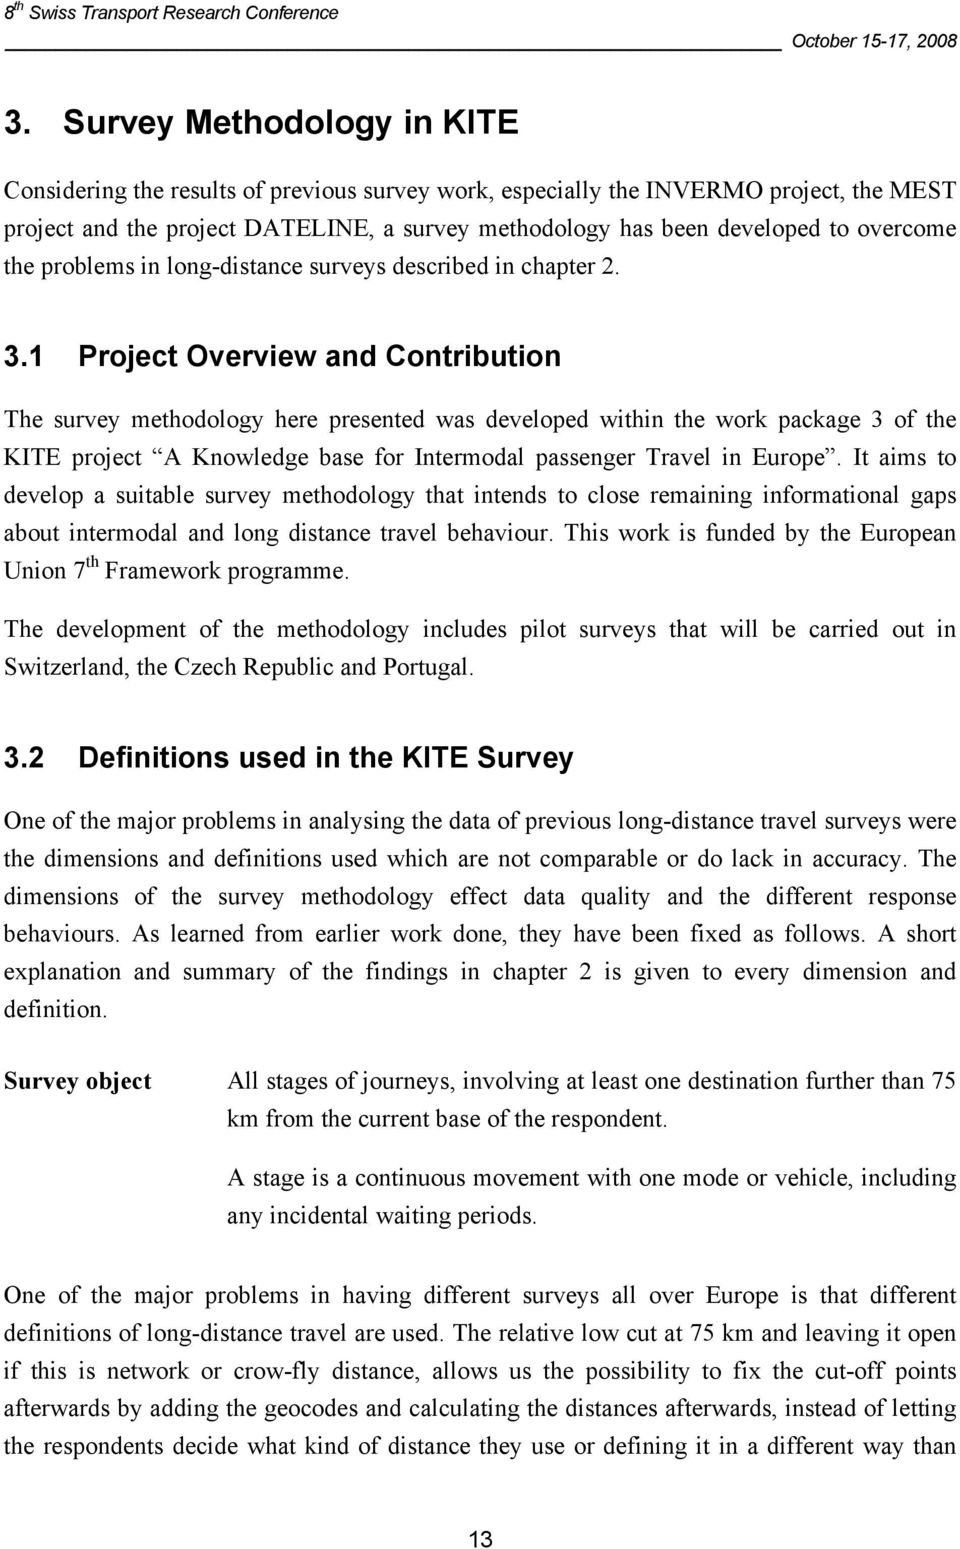 1 Project Overview and Contribution The survey methodology here presented was developed within the work package 3 of the KITE project A Knowledge base for Intermodal passenger Travel in Europe.